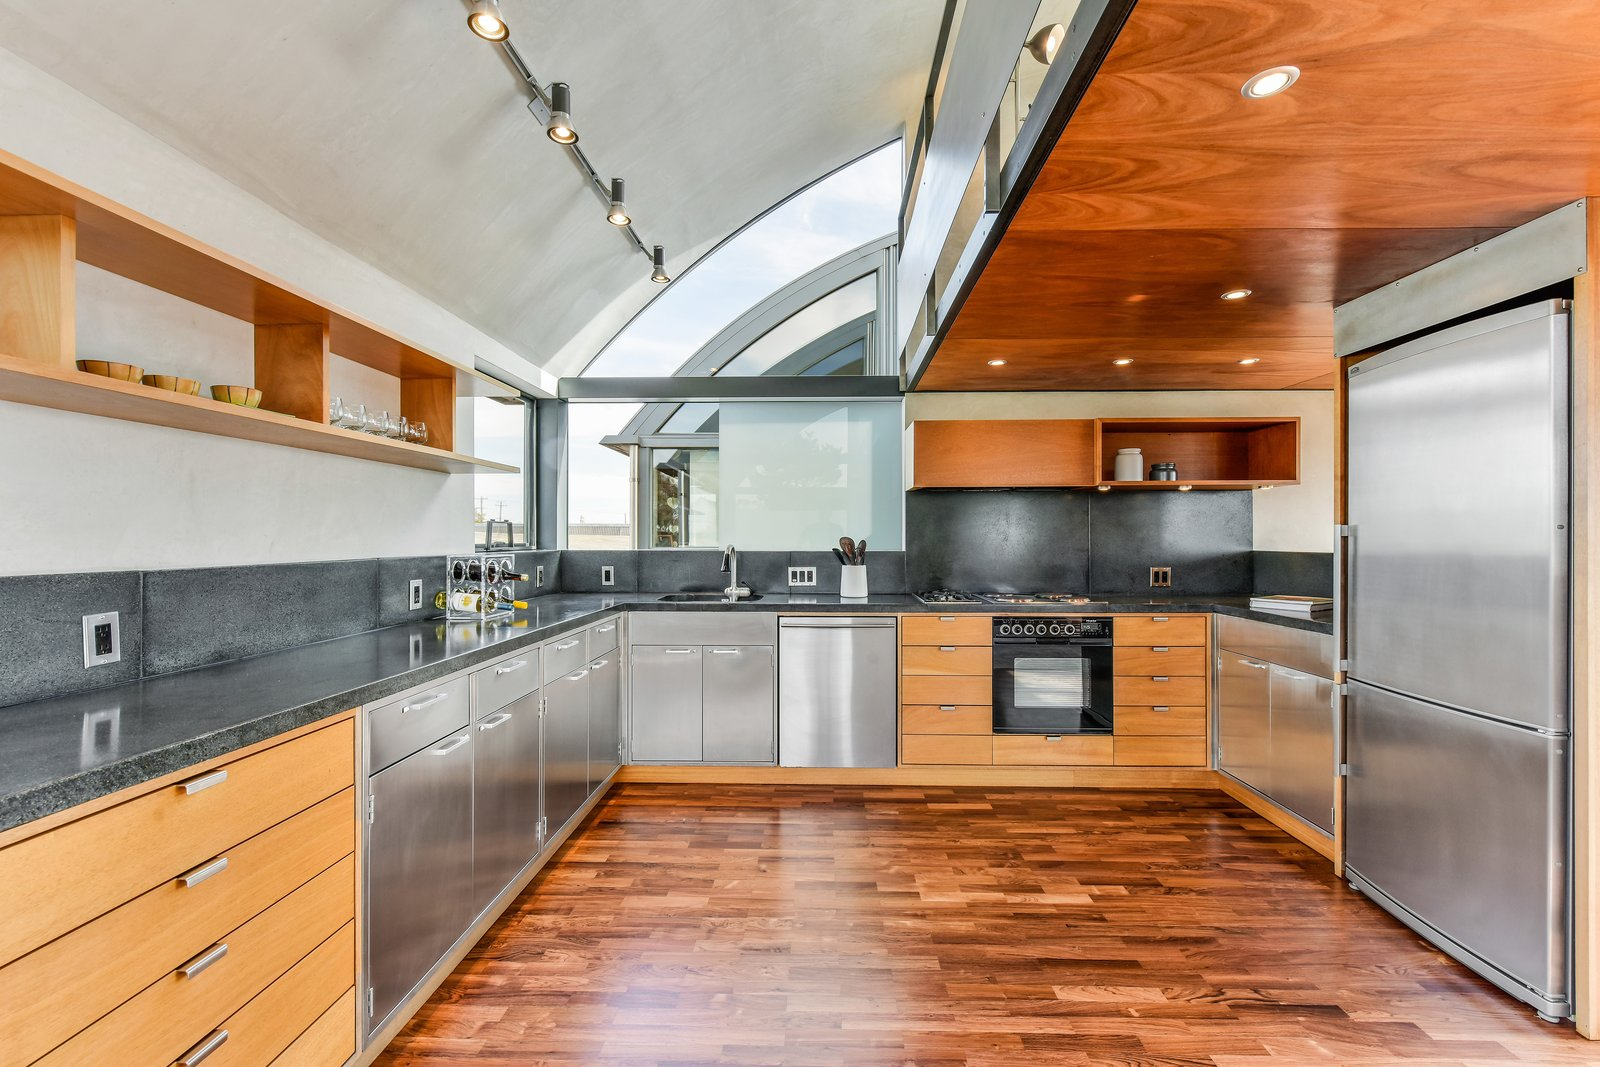 Kitchen, Medium Hardwood, Concrete, Wood, Concrete, Track, Ceiling, Refrigerator, Wall Oven, Range, Range Hood, Cooktops, Dishwasher, and Drop In Level 3 kitchen  Best Kitchen Concrete Cooktops Ceiling Range Photos from The Rempel Temple